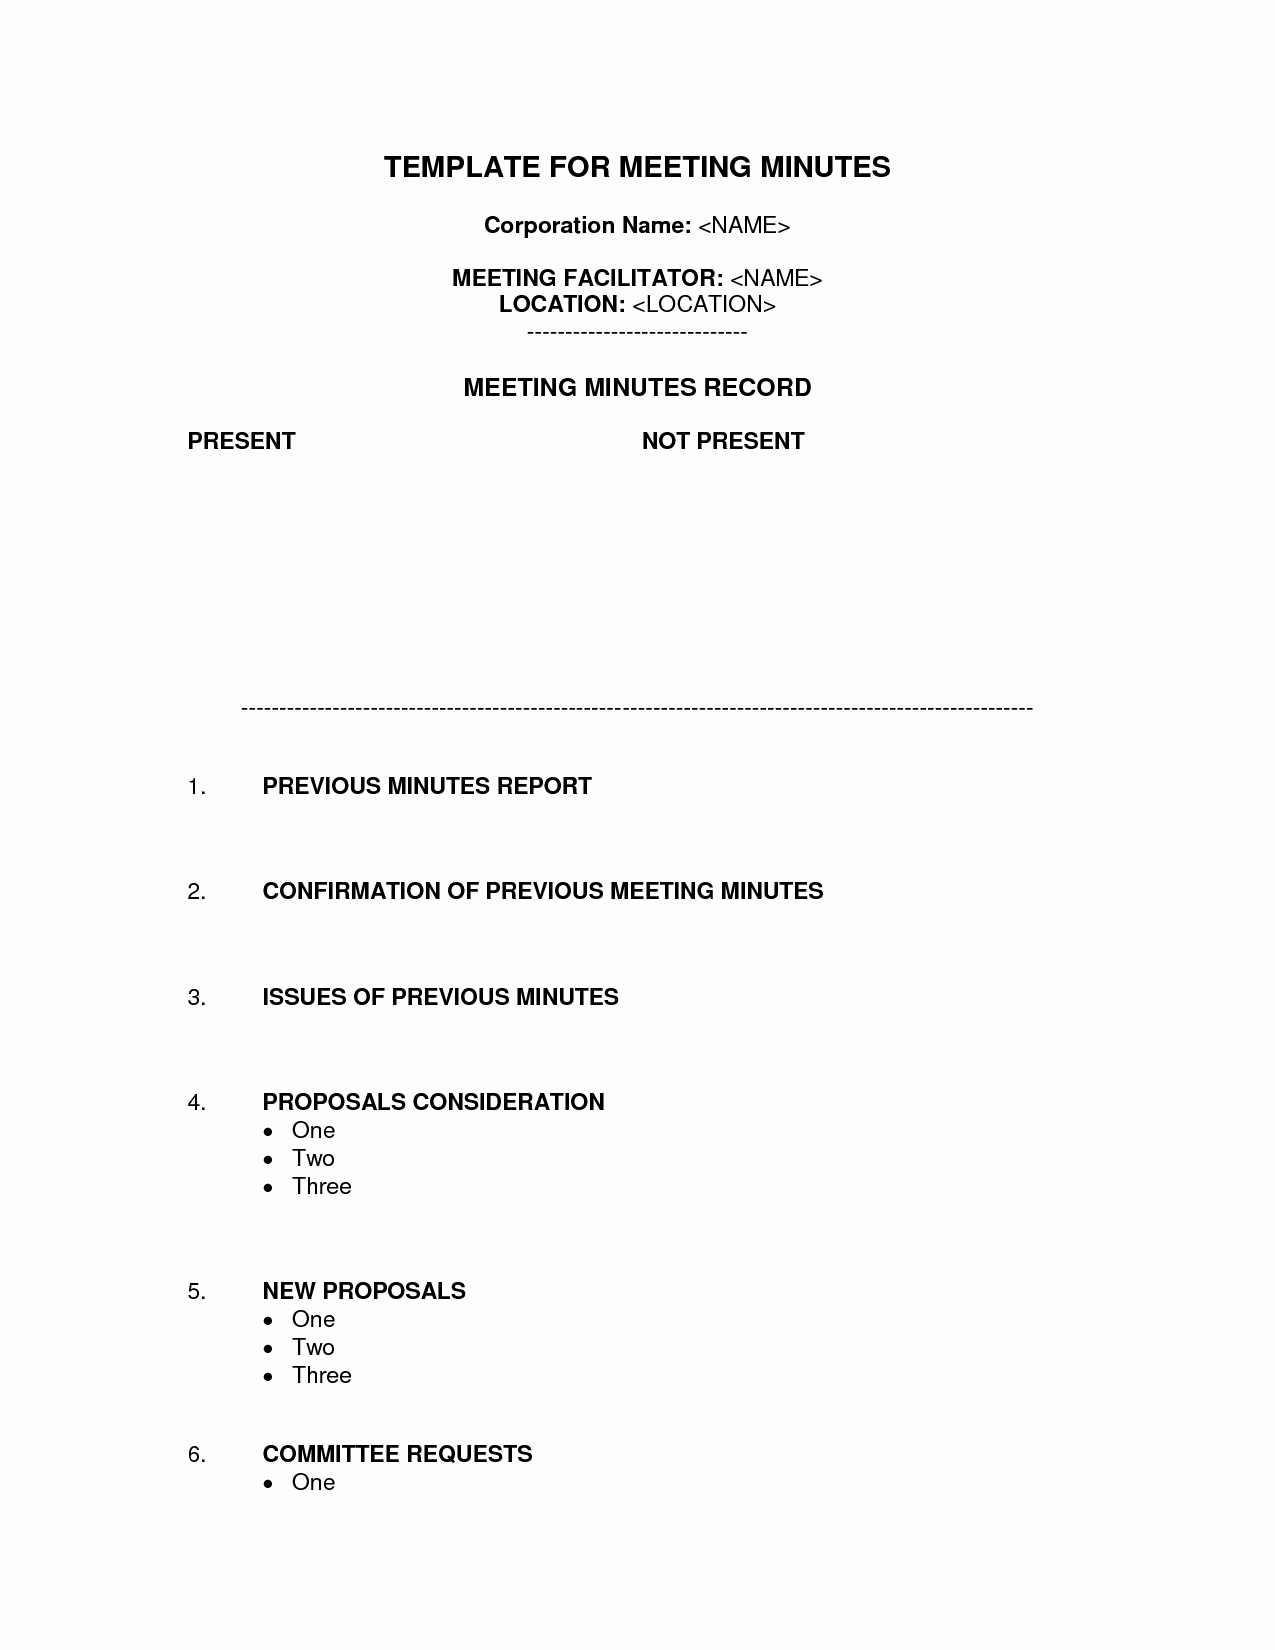 Corporate Meeting Minutes Template Free Beautiful Staff Meeting Minutes Template Word